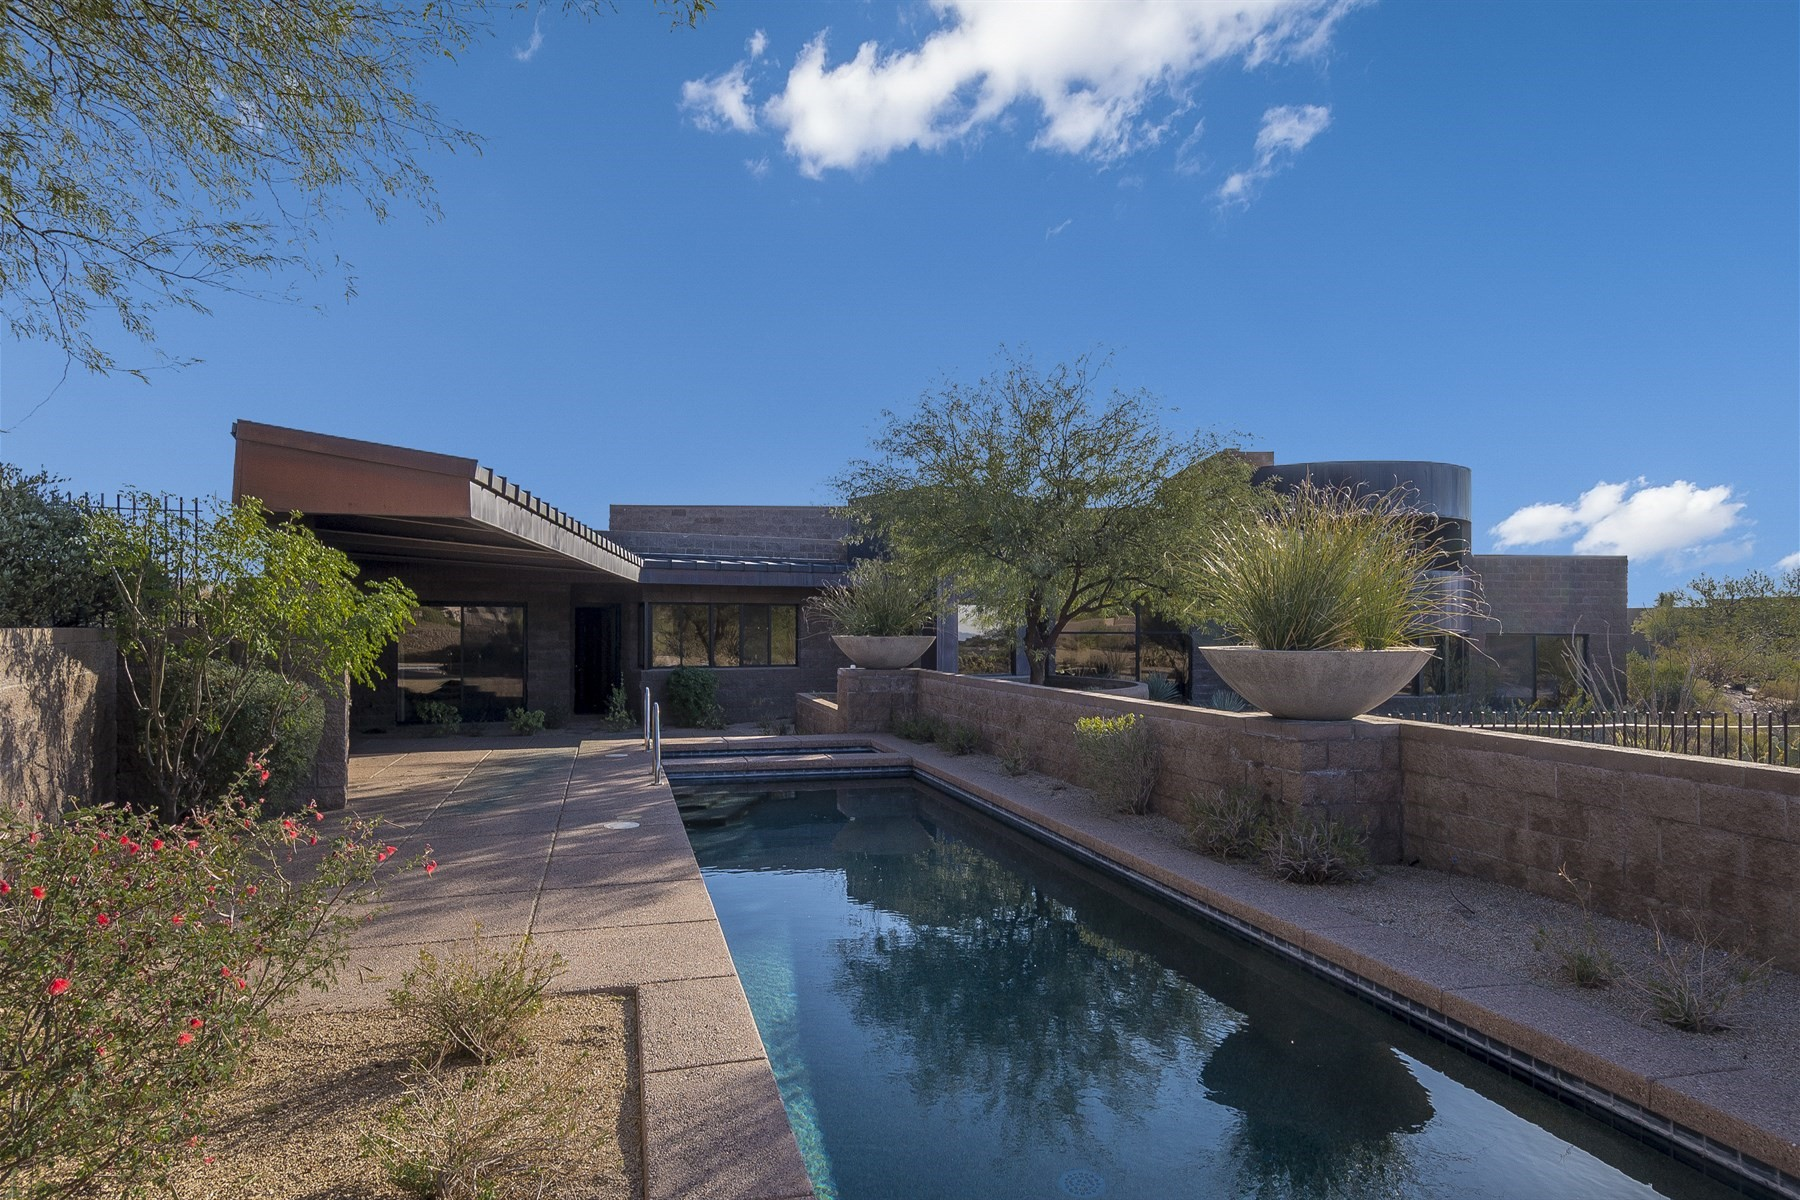 Single Family Home for Sale at Spectacular soft contemporary home 9828 E Hidden Valley Rd, Scottsdale, Arizona, 85262 United States